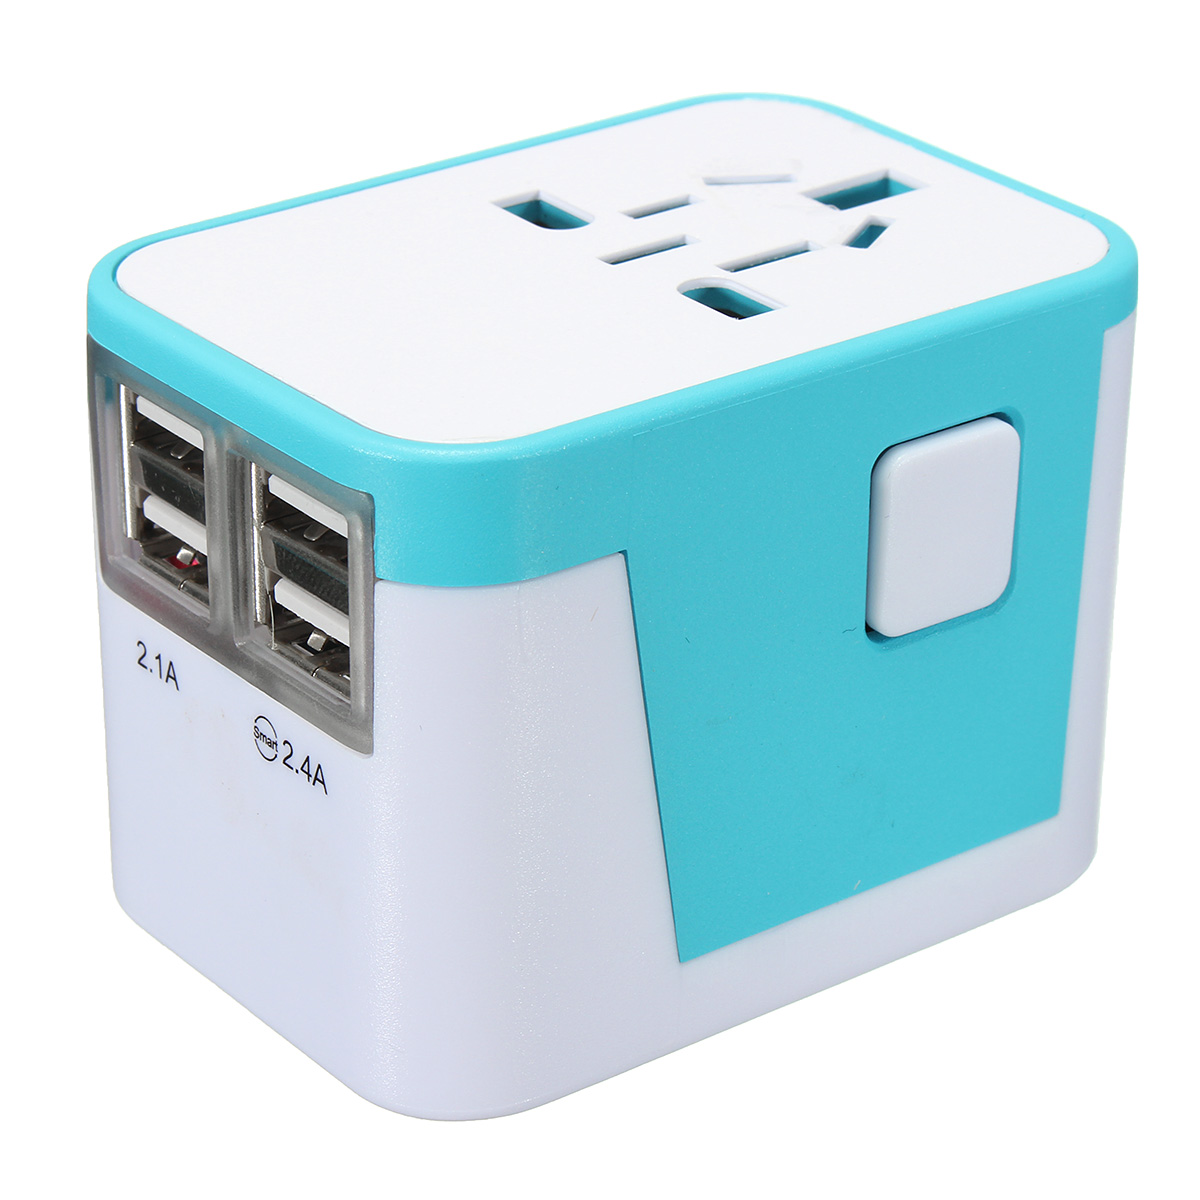 All in One Universal International Plug Adapter 4USB Ports World Travel AC Power Charger US UK AU EU многофункциональный универсальный world travel au великобритания сша в ес ac power plug адаптер конвертер a57